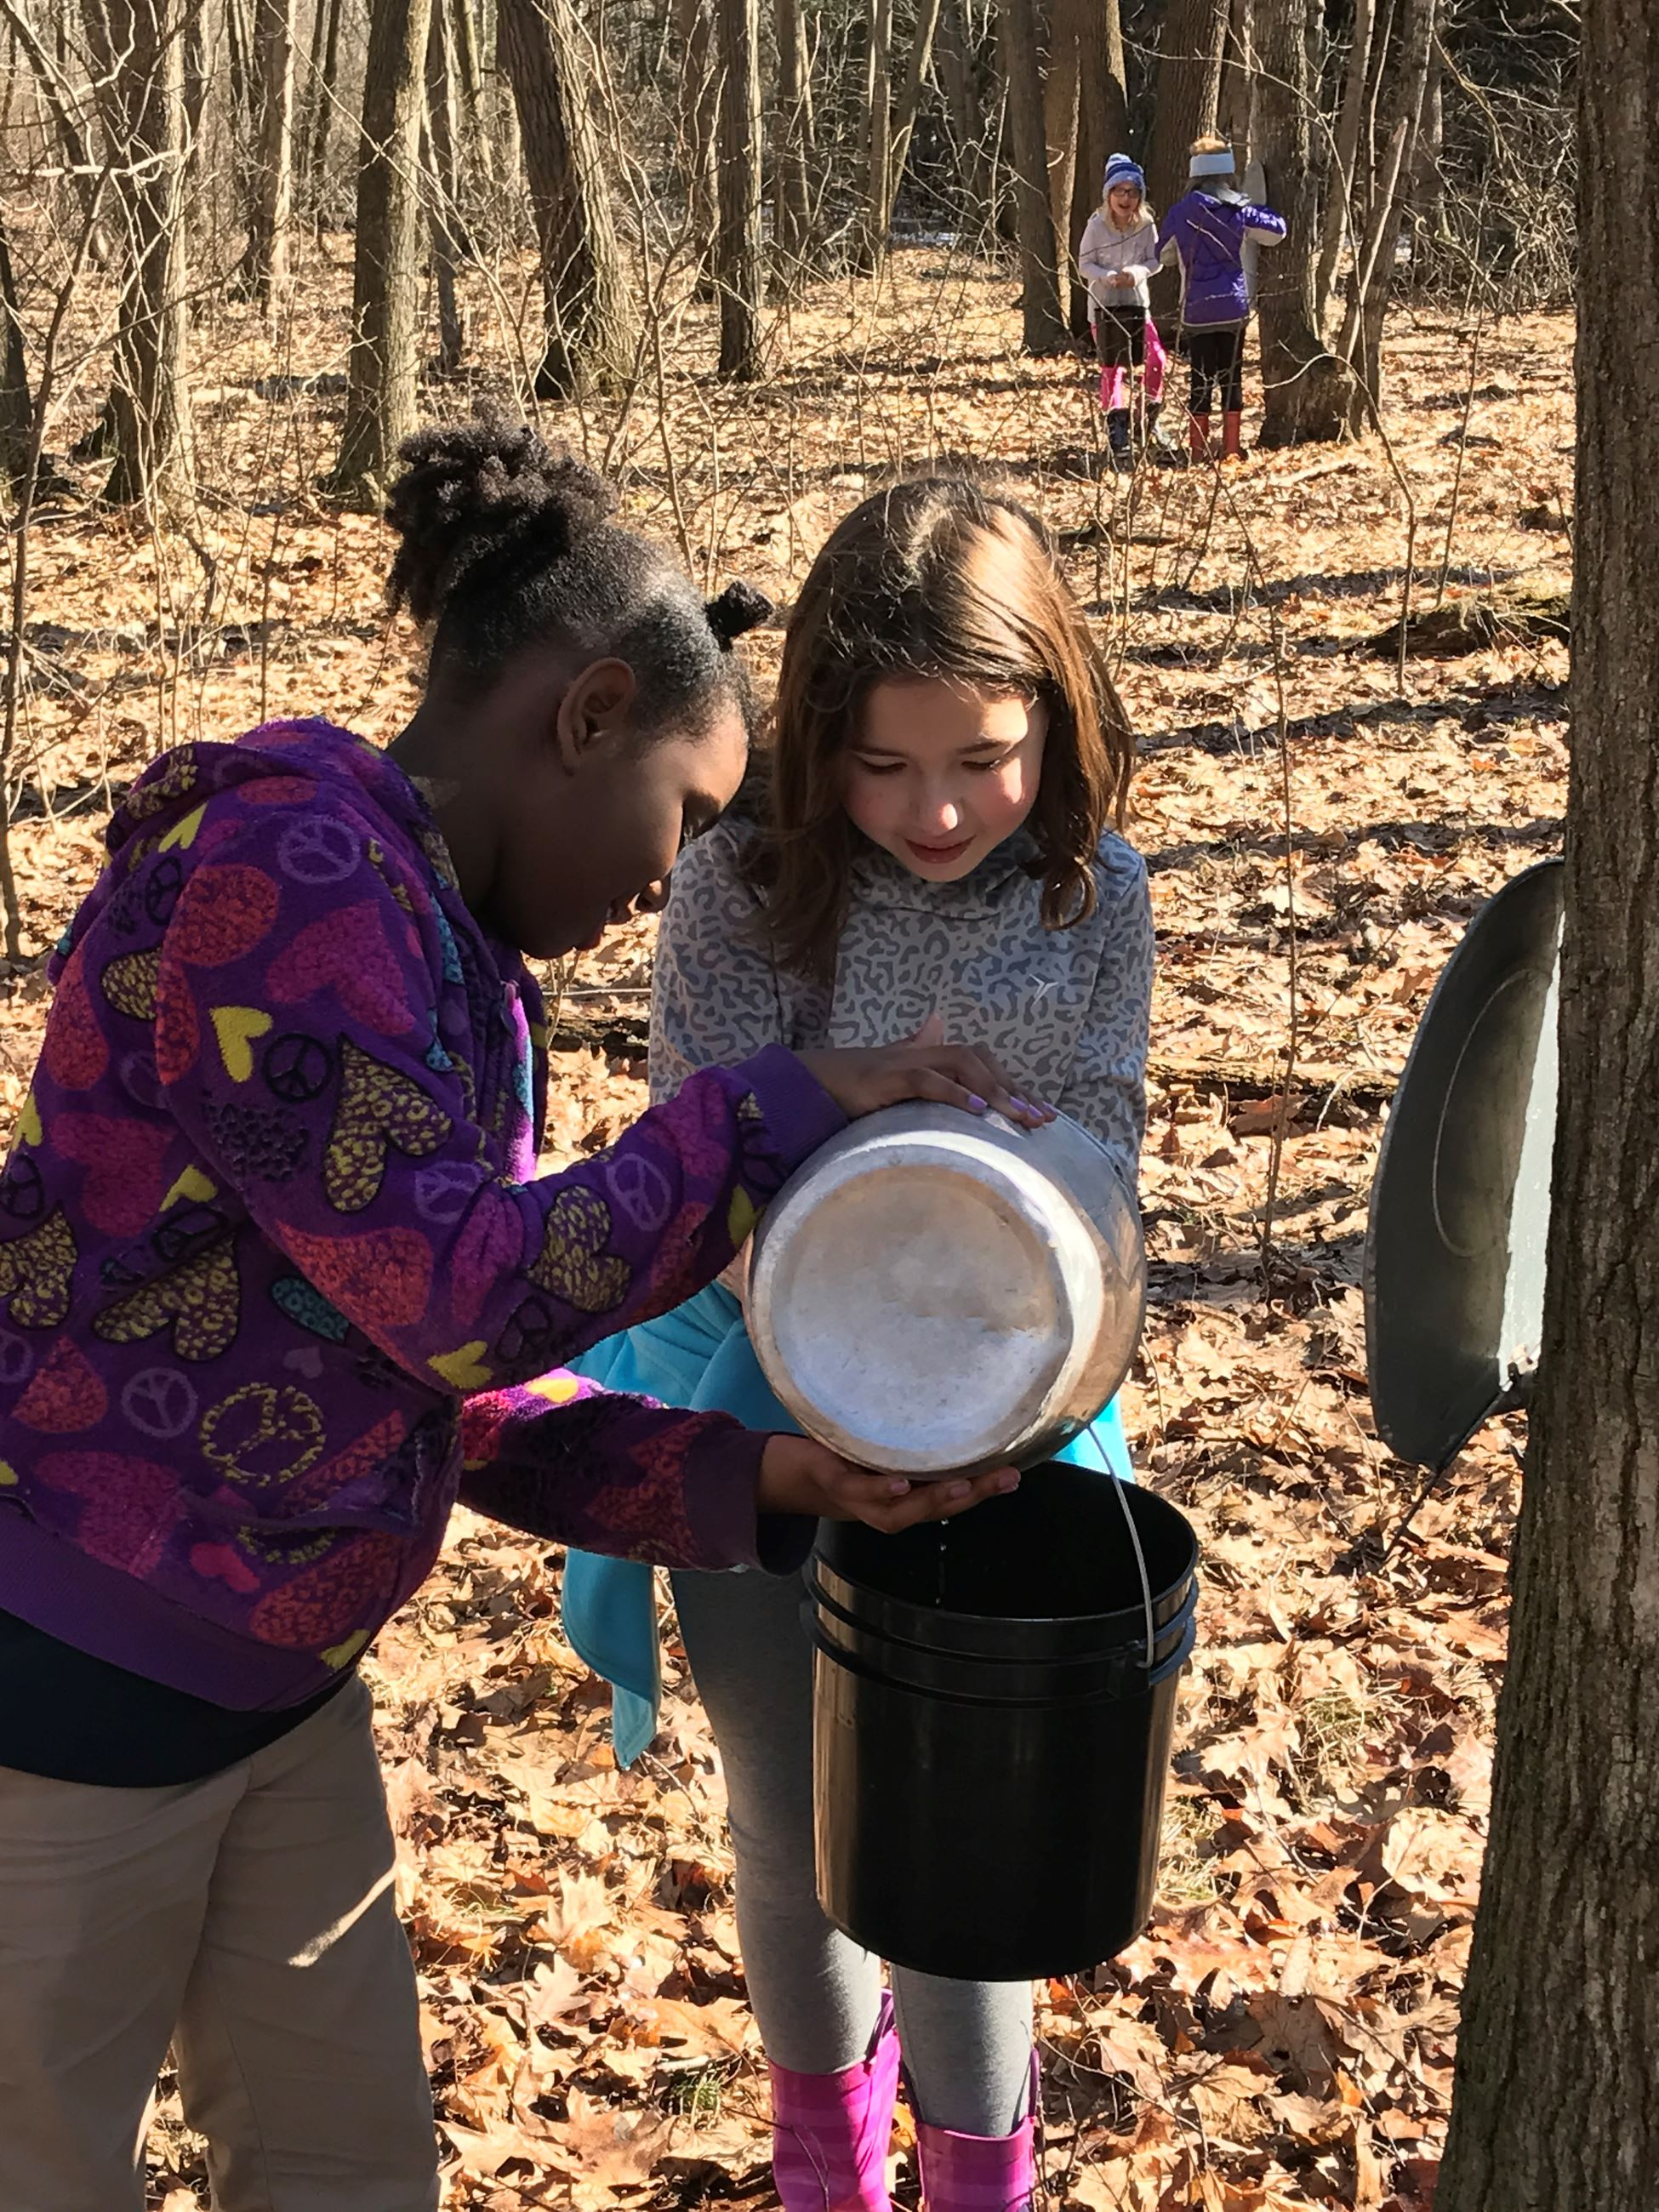 Two girls, one girl is pouring sap from a metal Vermont bucket into a plastic bucket which the other